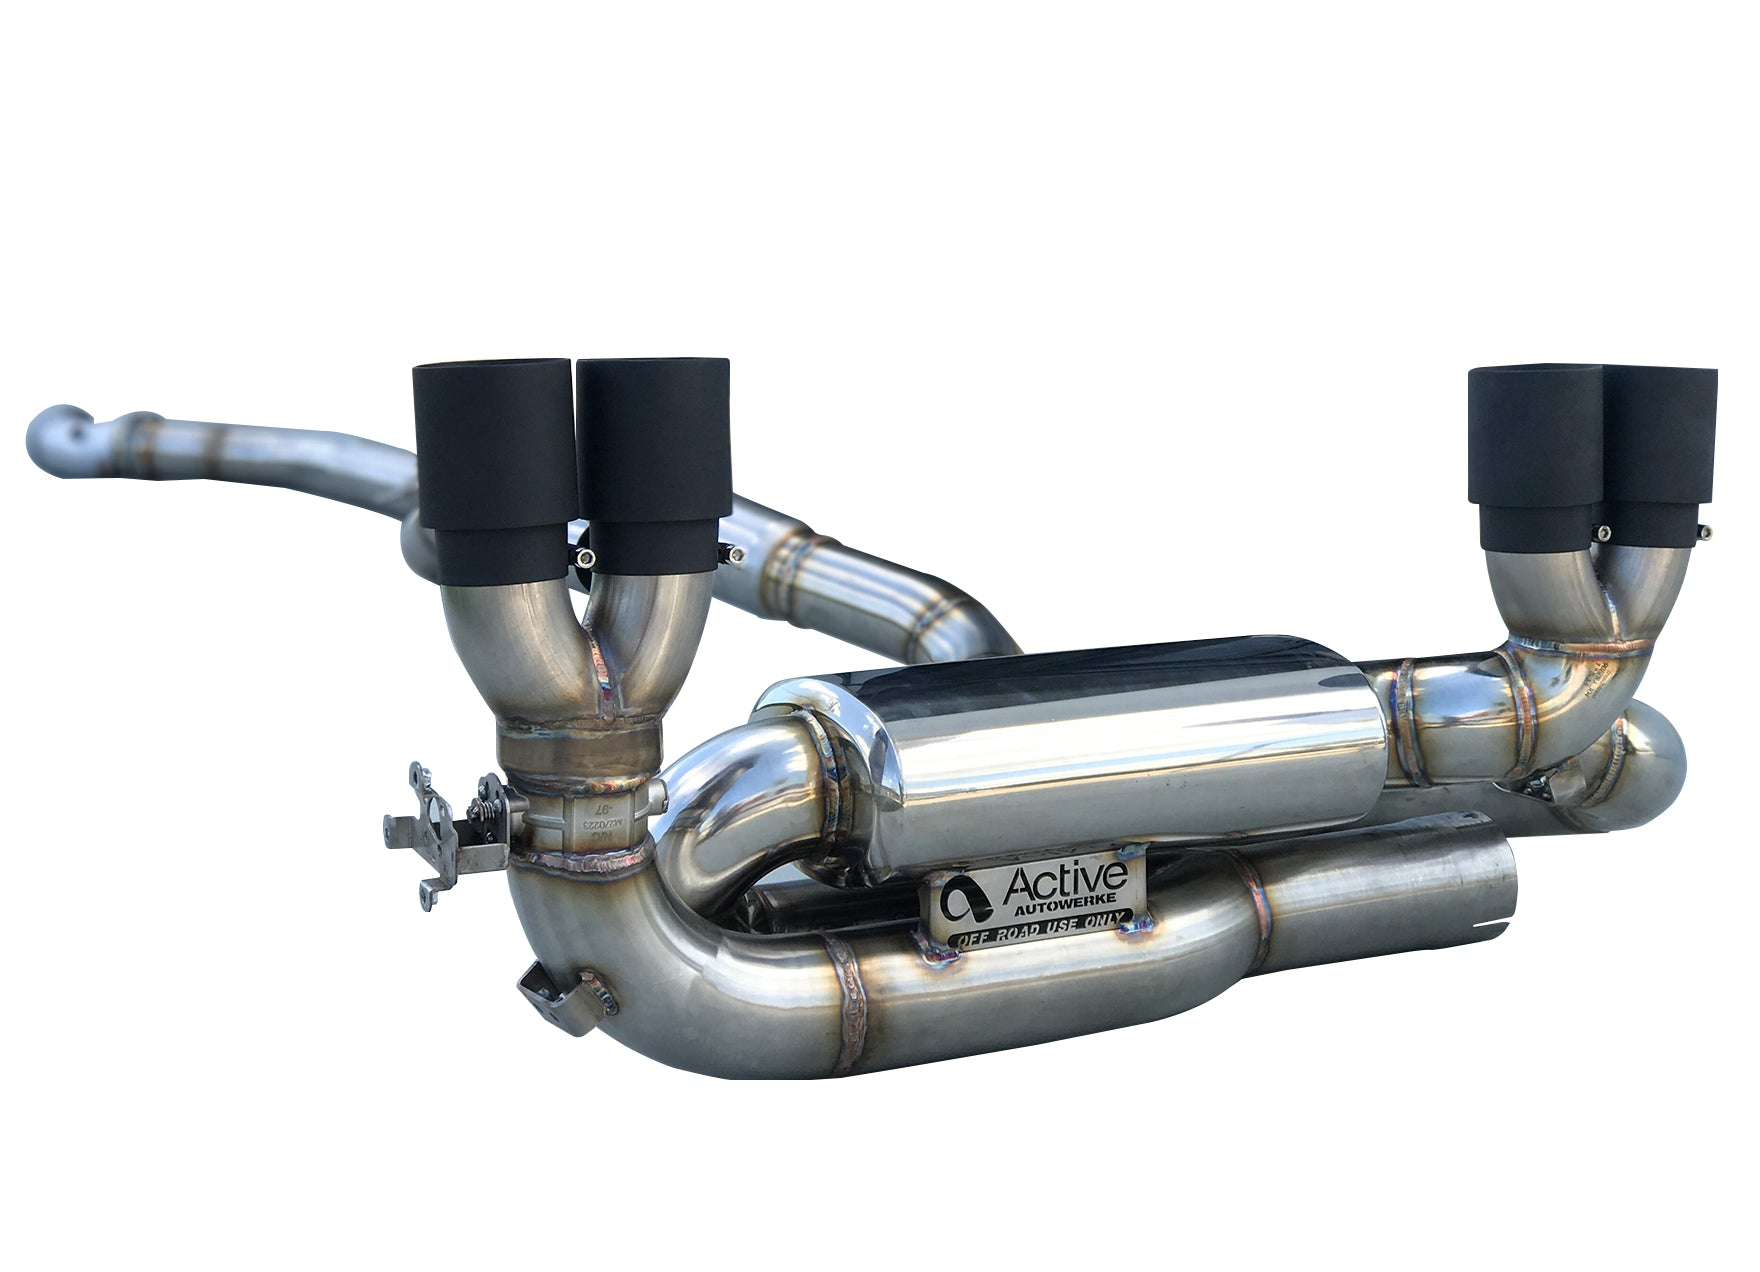 F87 M2 Competition Signature Exhaust System includes Active F-brace